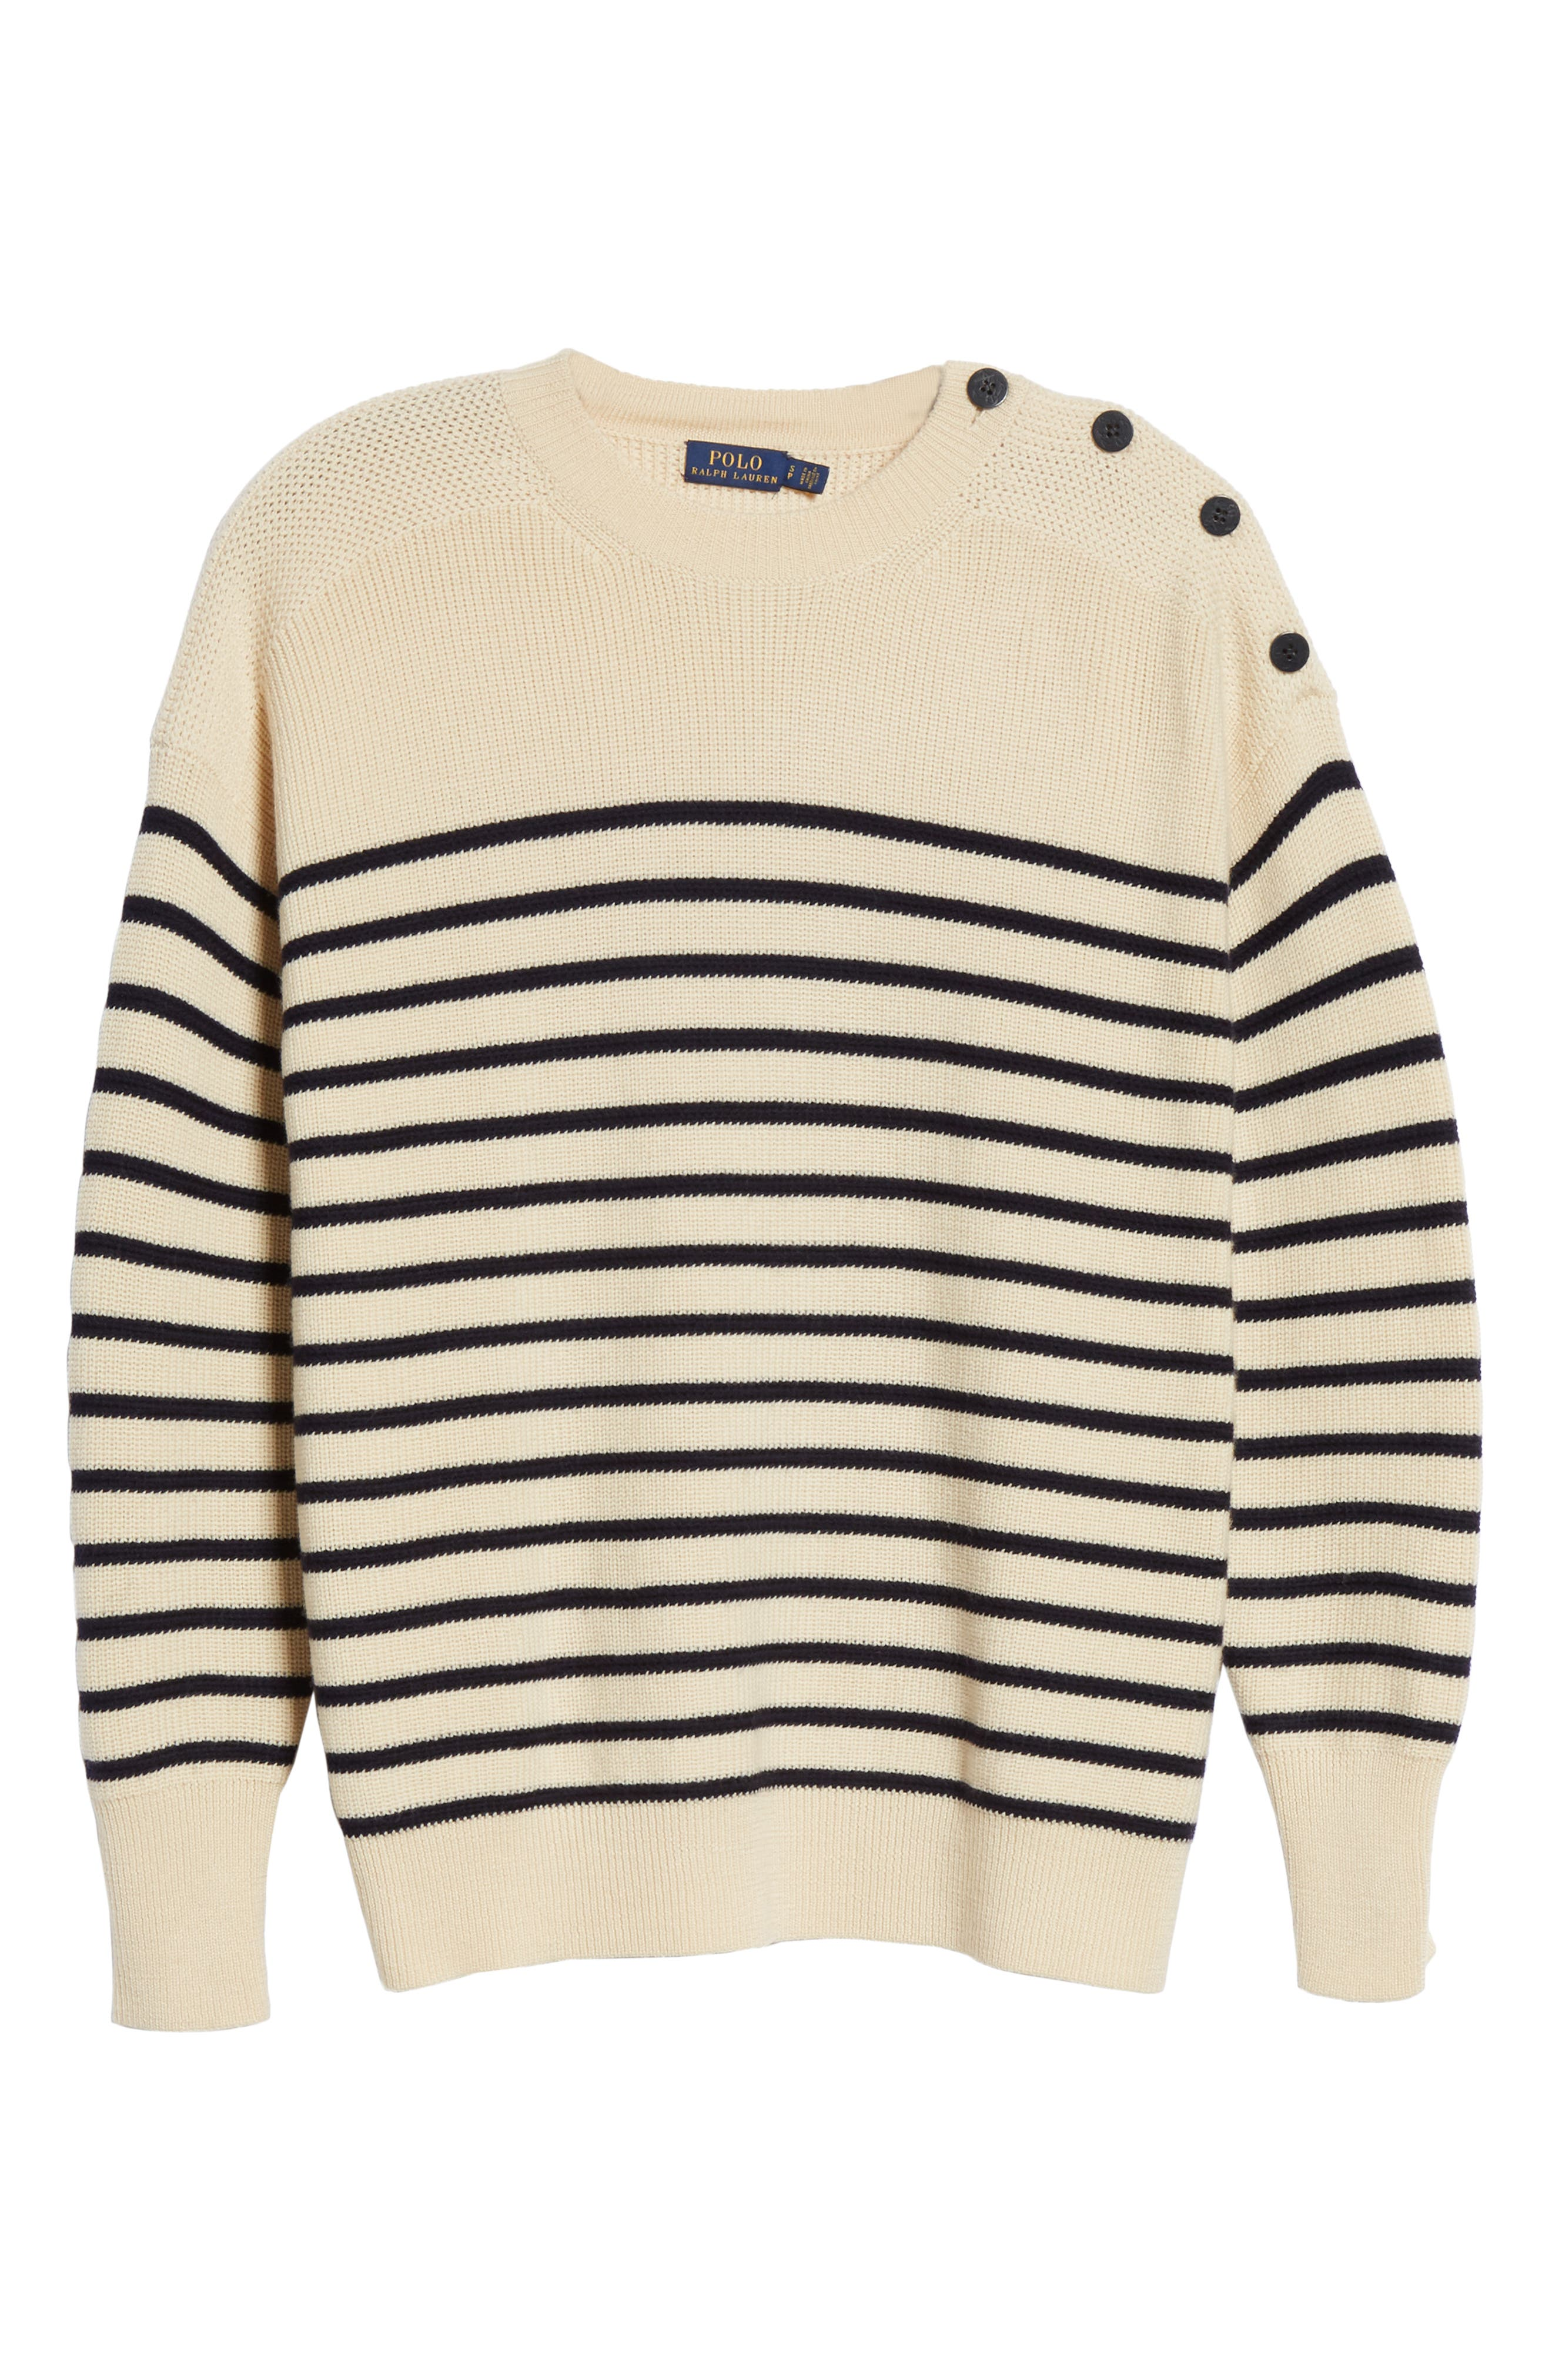 Stripe Wool Sweater,                             Alternate thumbnail 6, color,                             CREAM/ NAVY